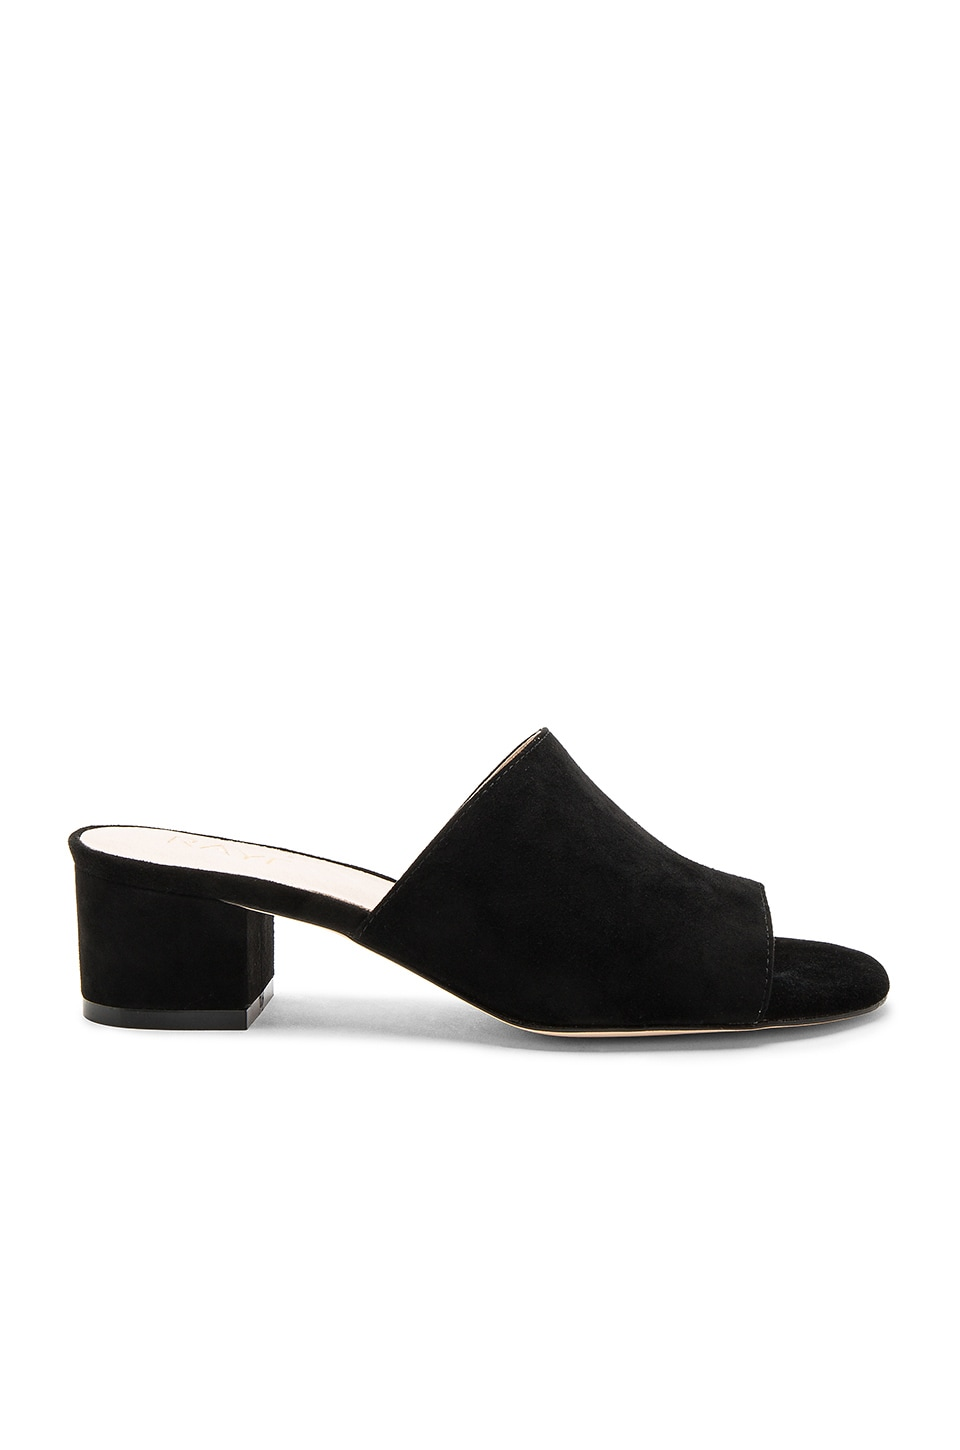 RAYE Cara Mule in Black Suede